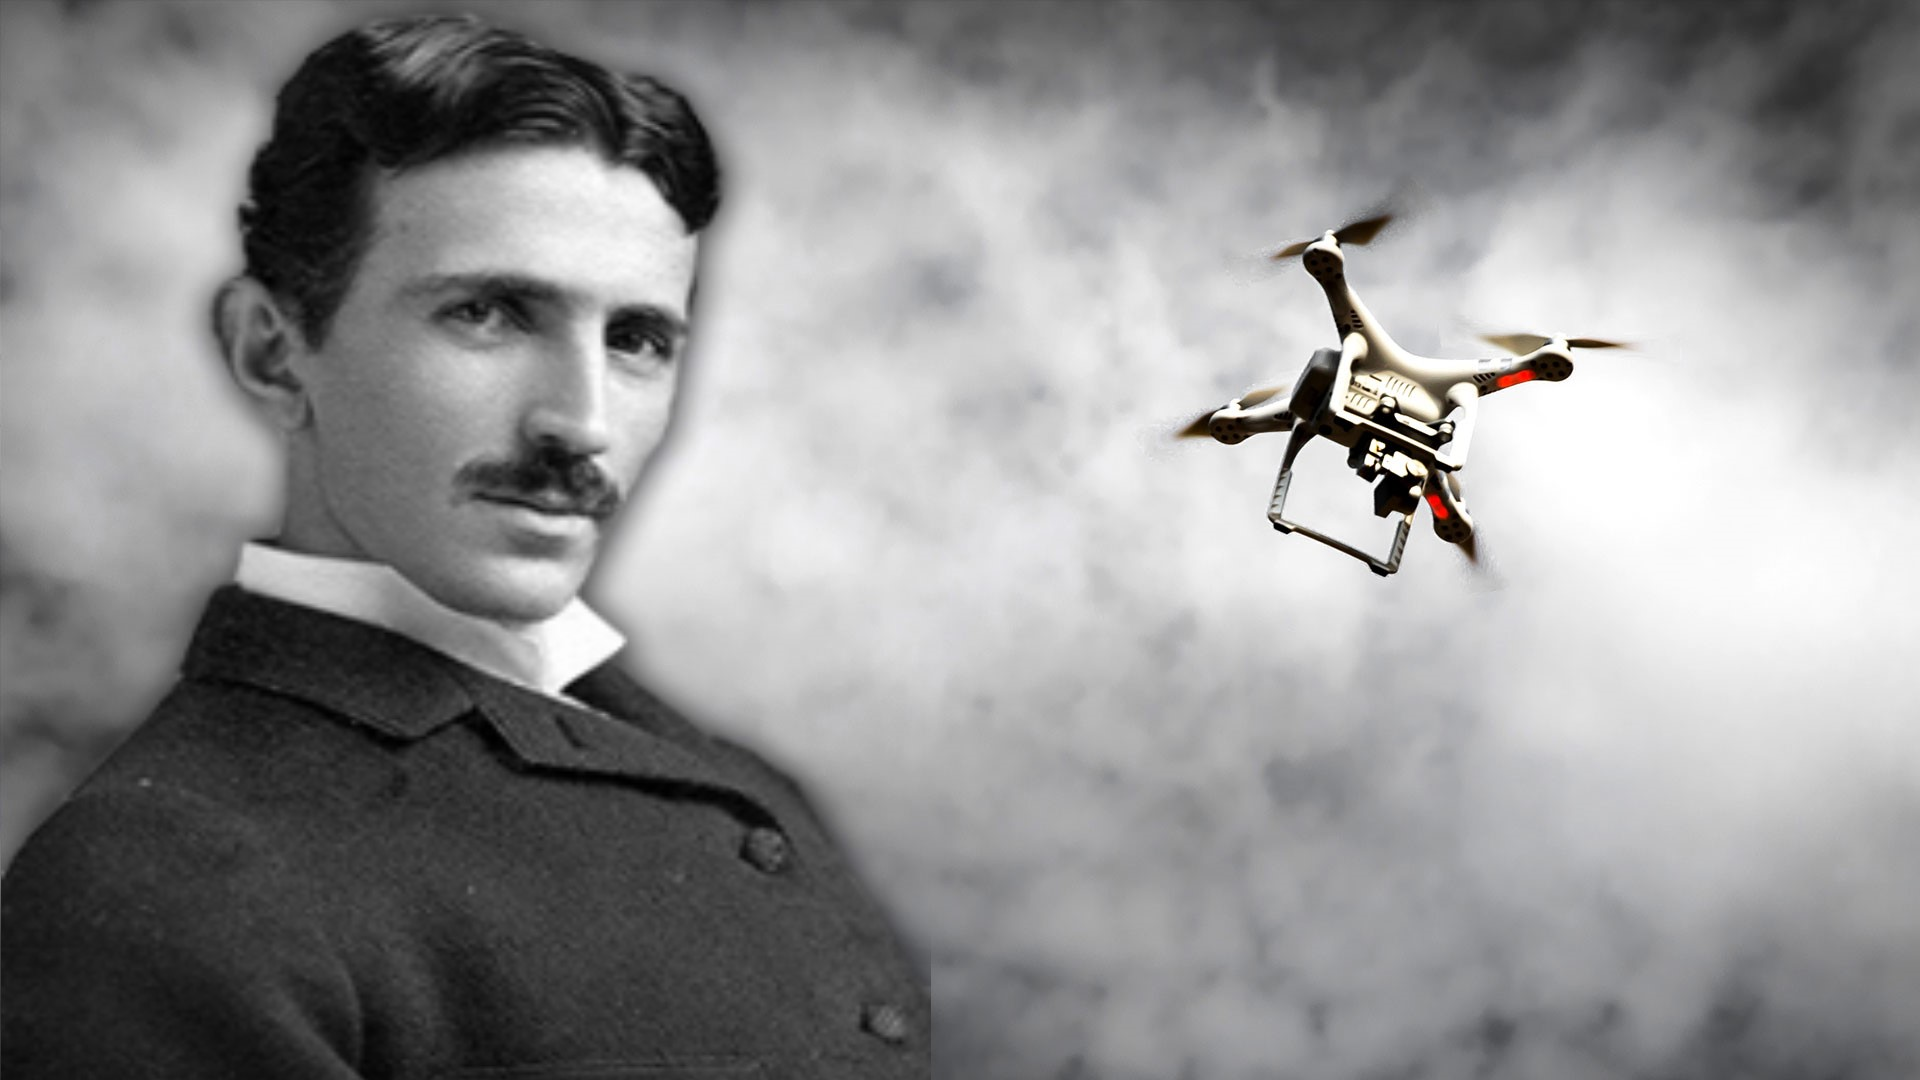 Nikola Tesla patented a Drone in 1898 1